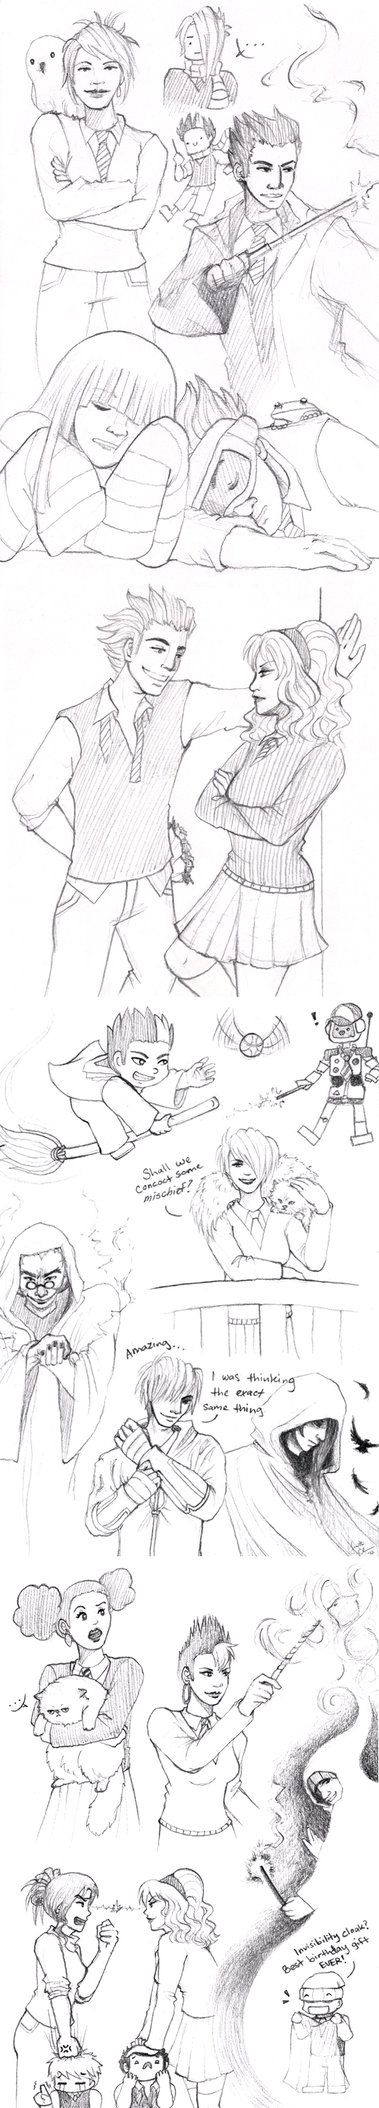 Continuation of DC/Harry Potter doodles =w= Dance Central © Harmonix Harry Potter © J.K. Rowling